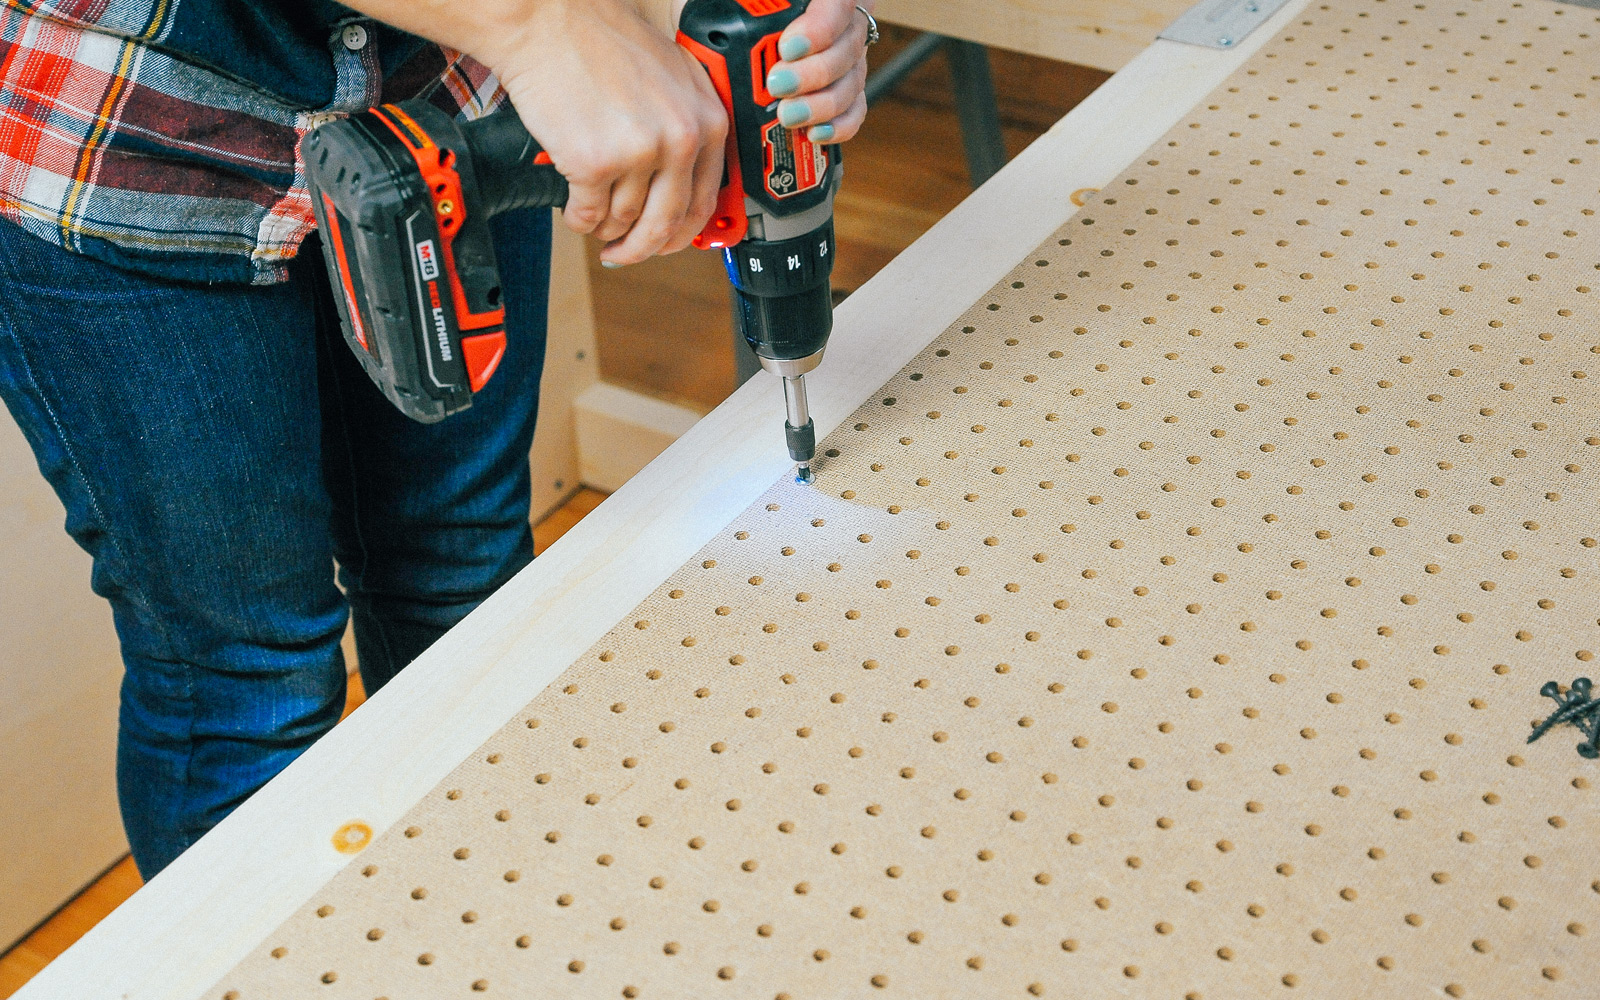 pegboard for diy workbench